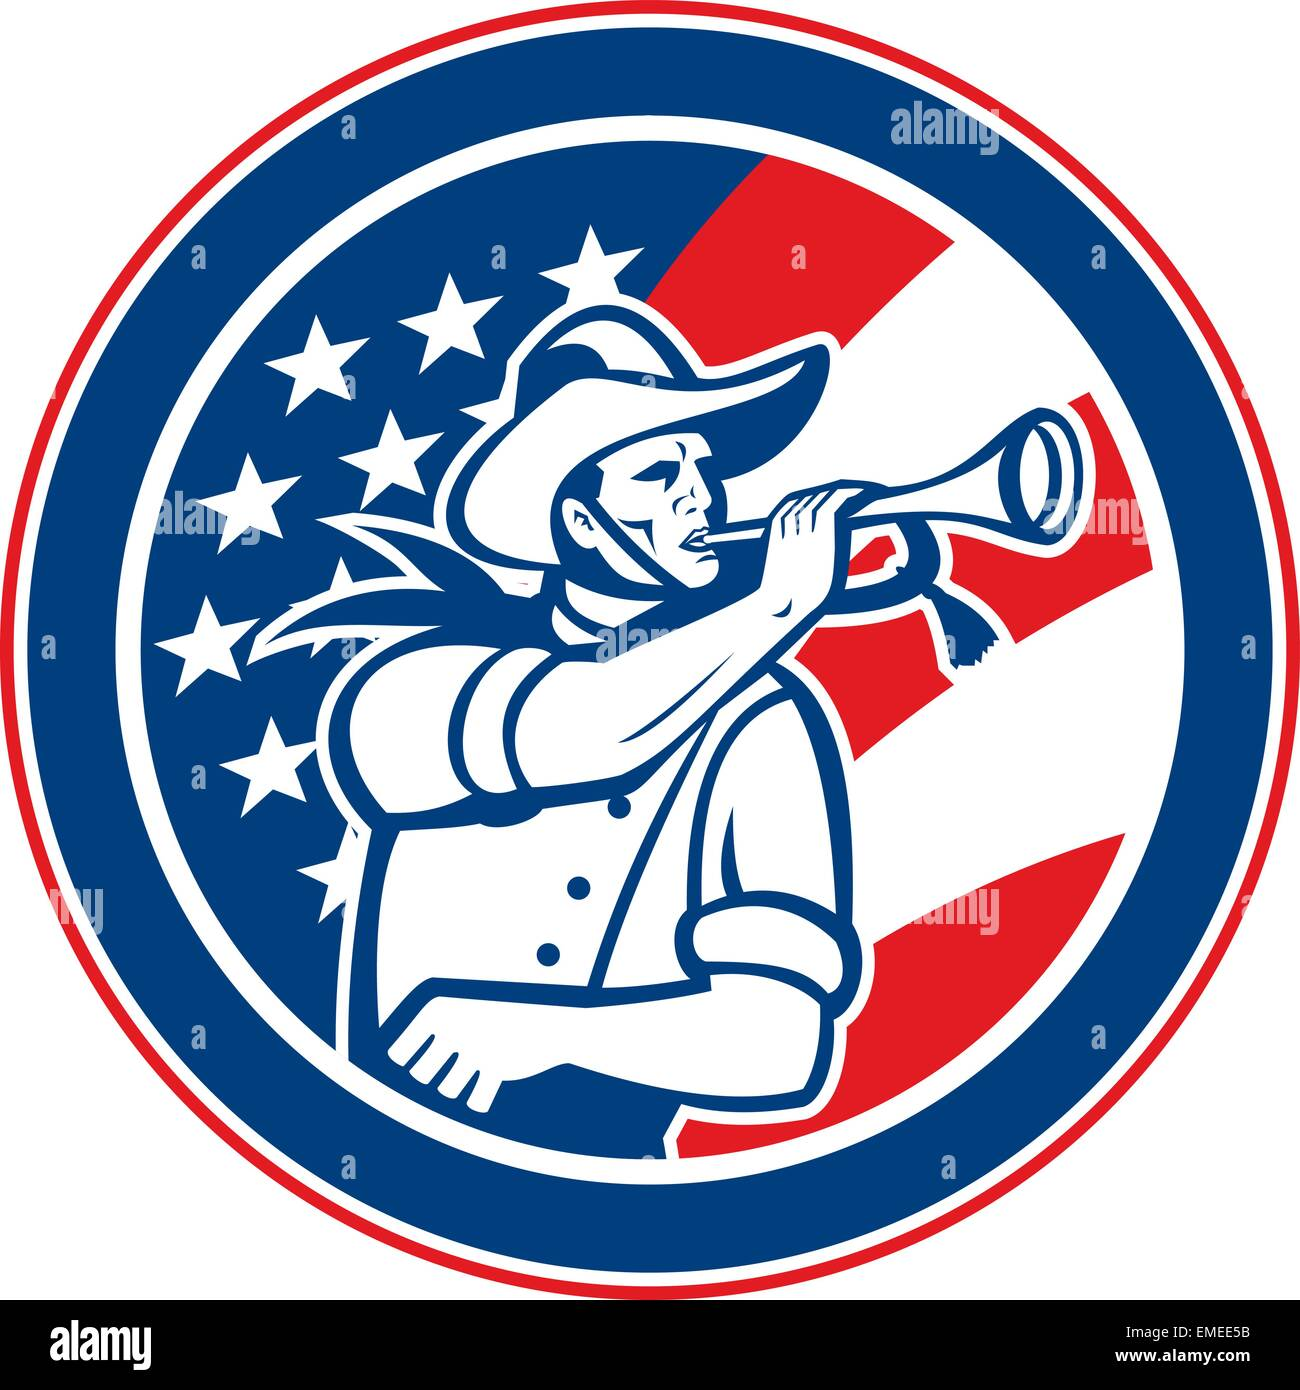 American Cavalry Soldier Blowing Bugle Circle - Stock Vector